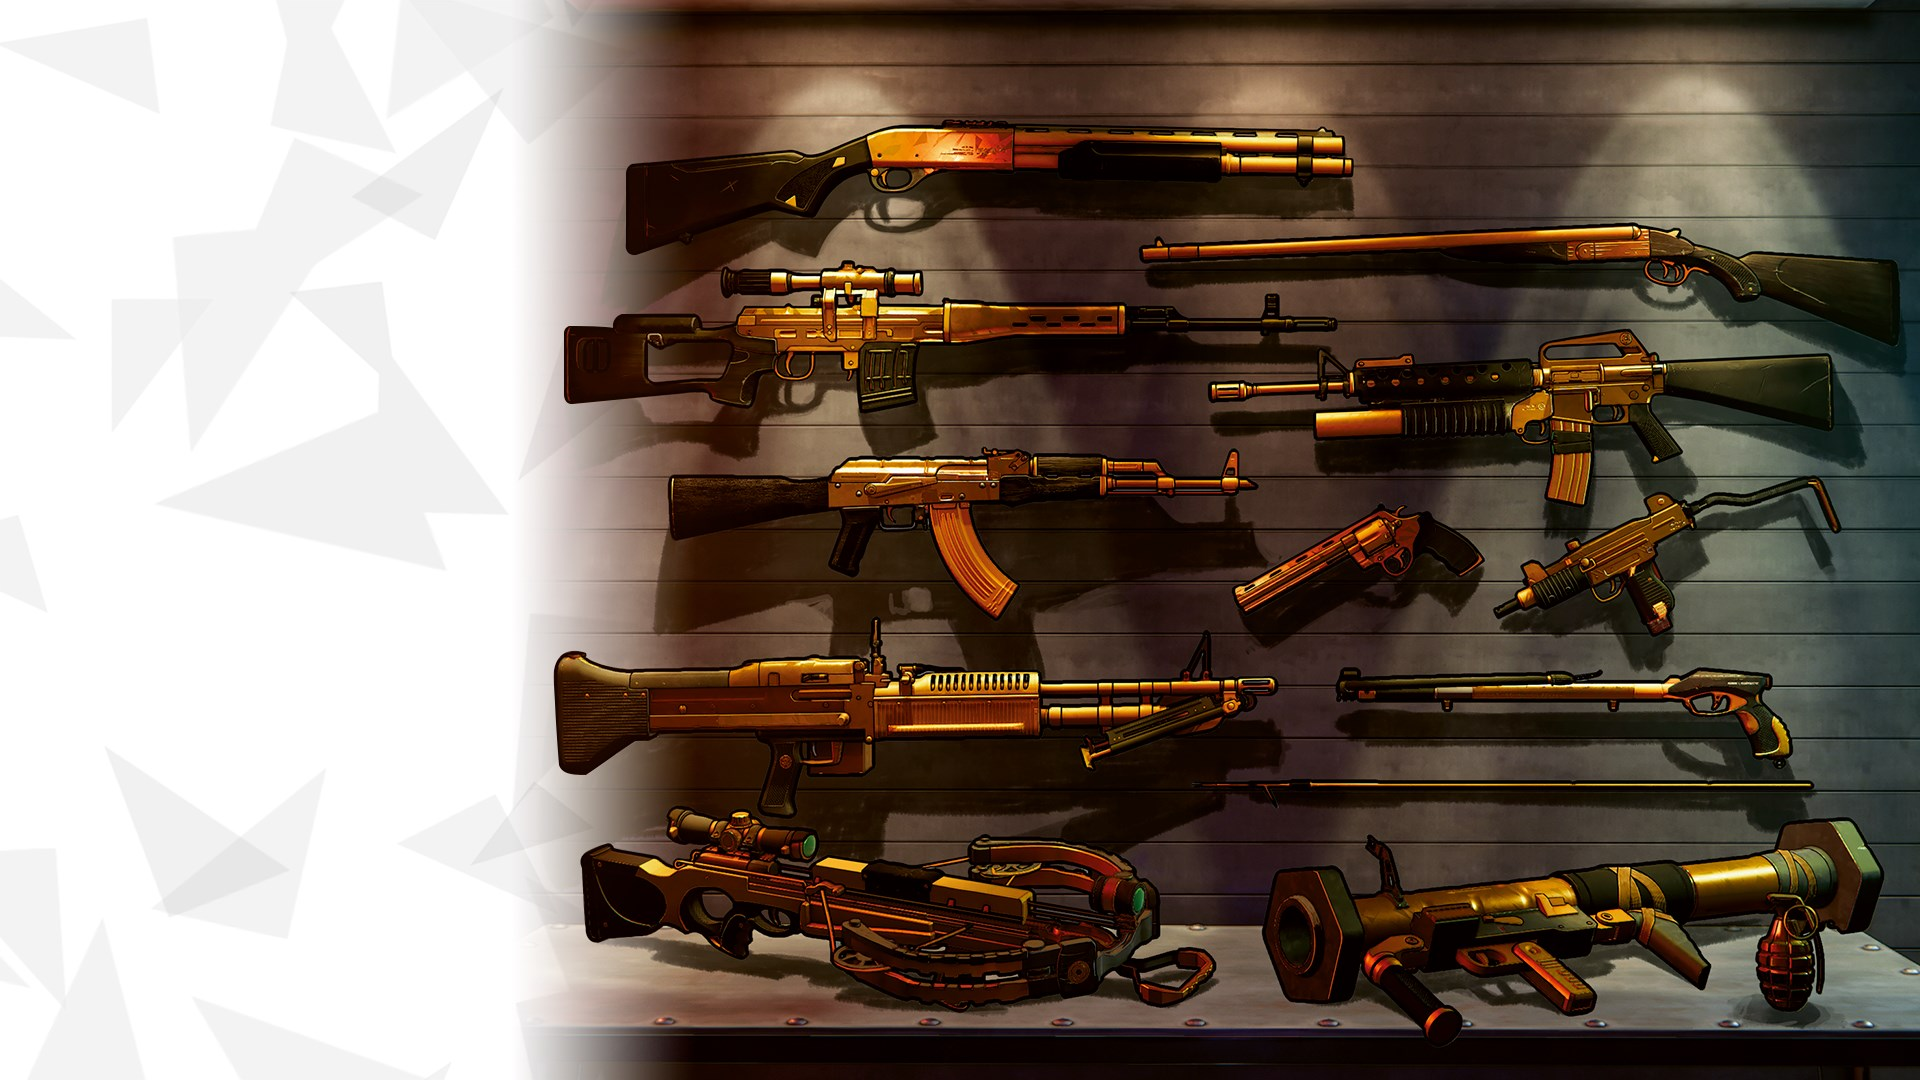 XIII Golden Weapons Skins Pack